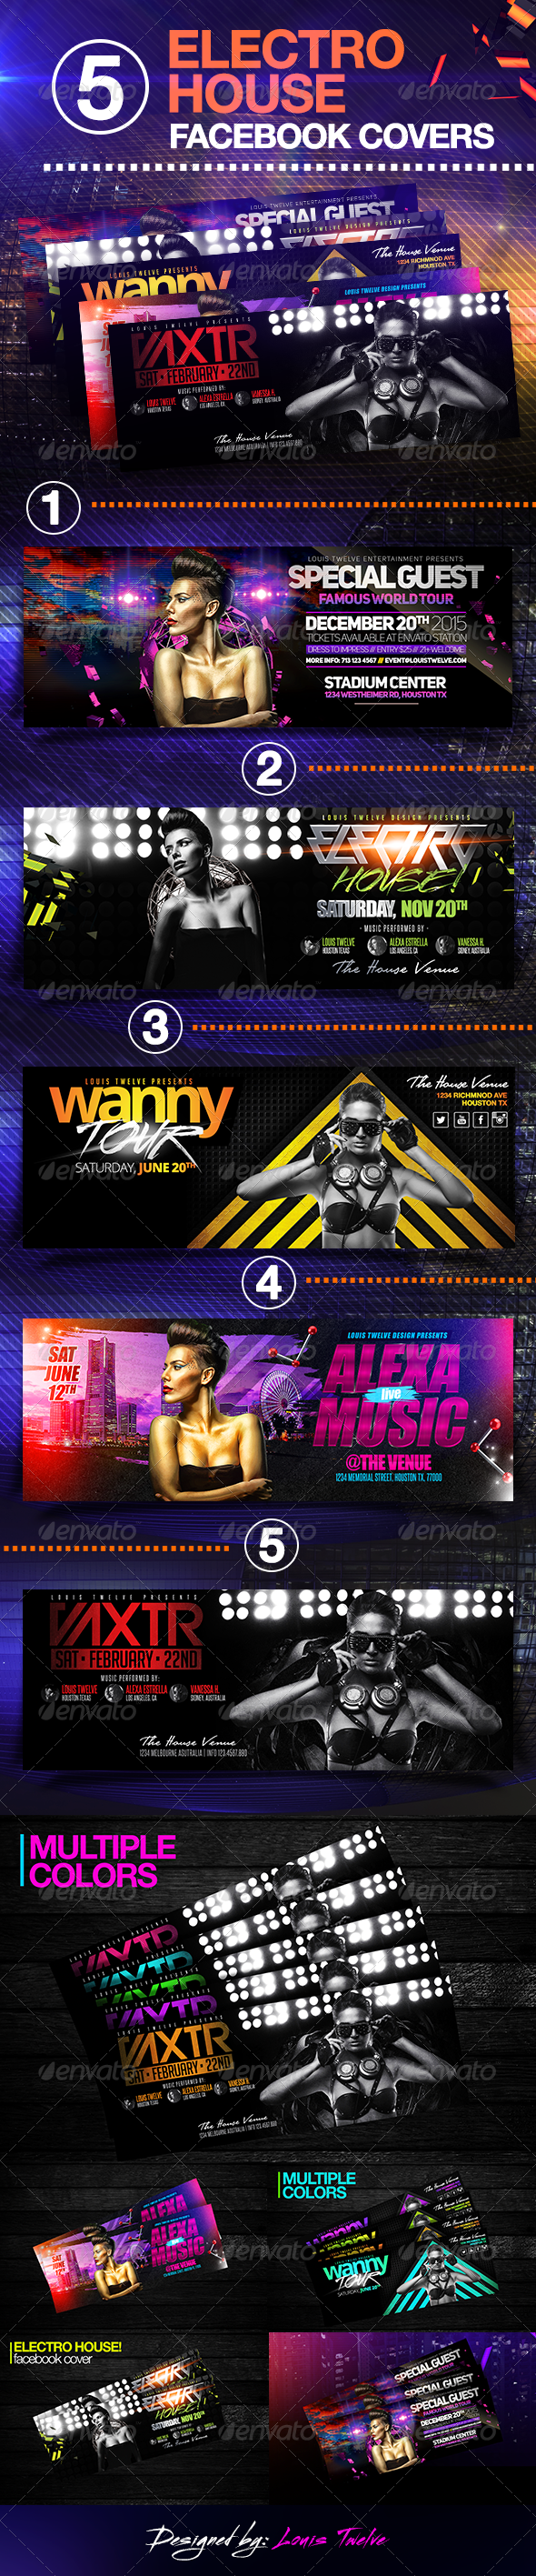 GraphicRiver 05 Electro House Facebook Covers 8197348